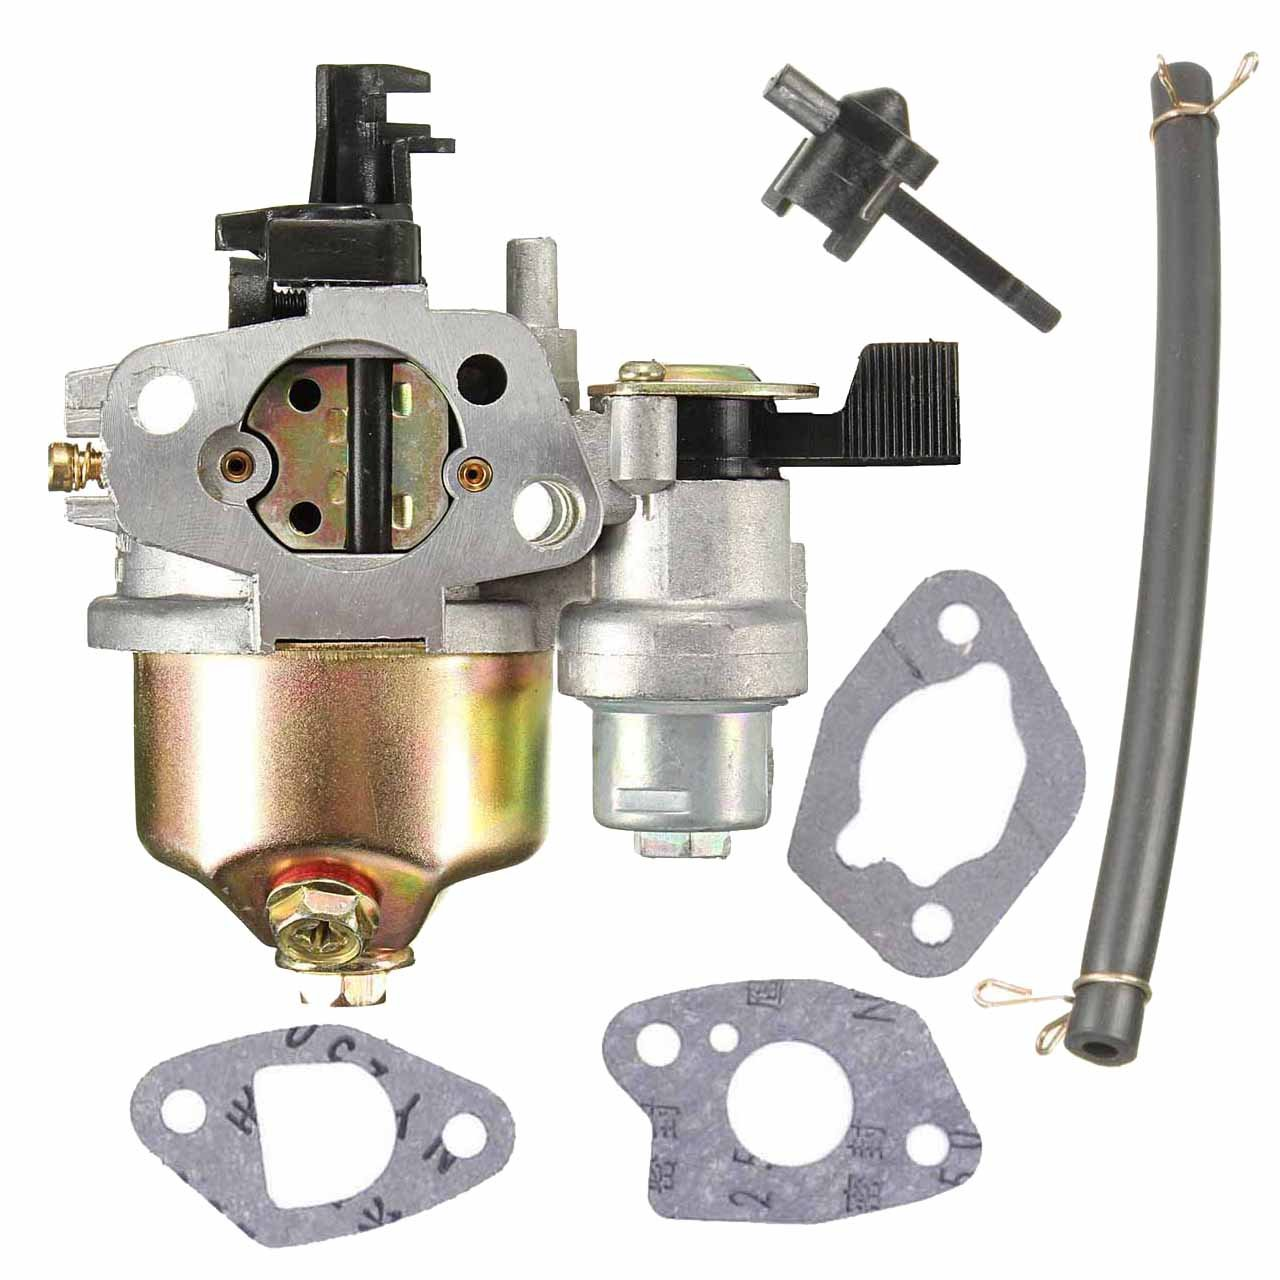 FYIYI New GX120 Carburetor for Honda GX120 GX140 GX160 GX168 GX200 Small Engine